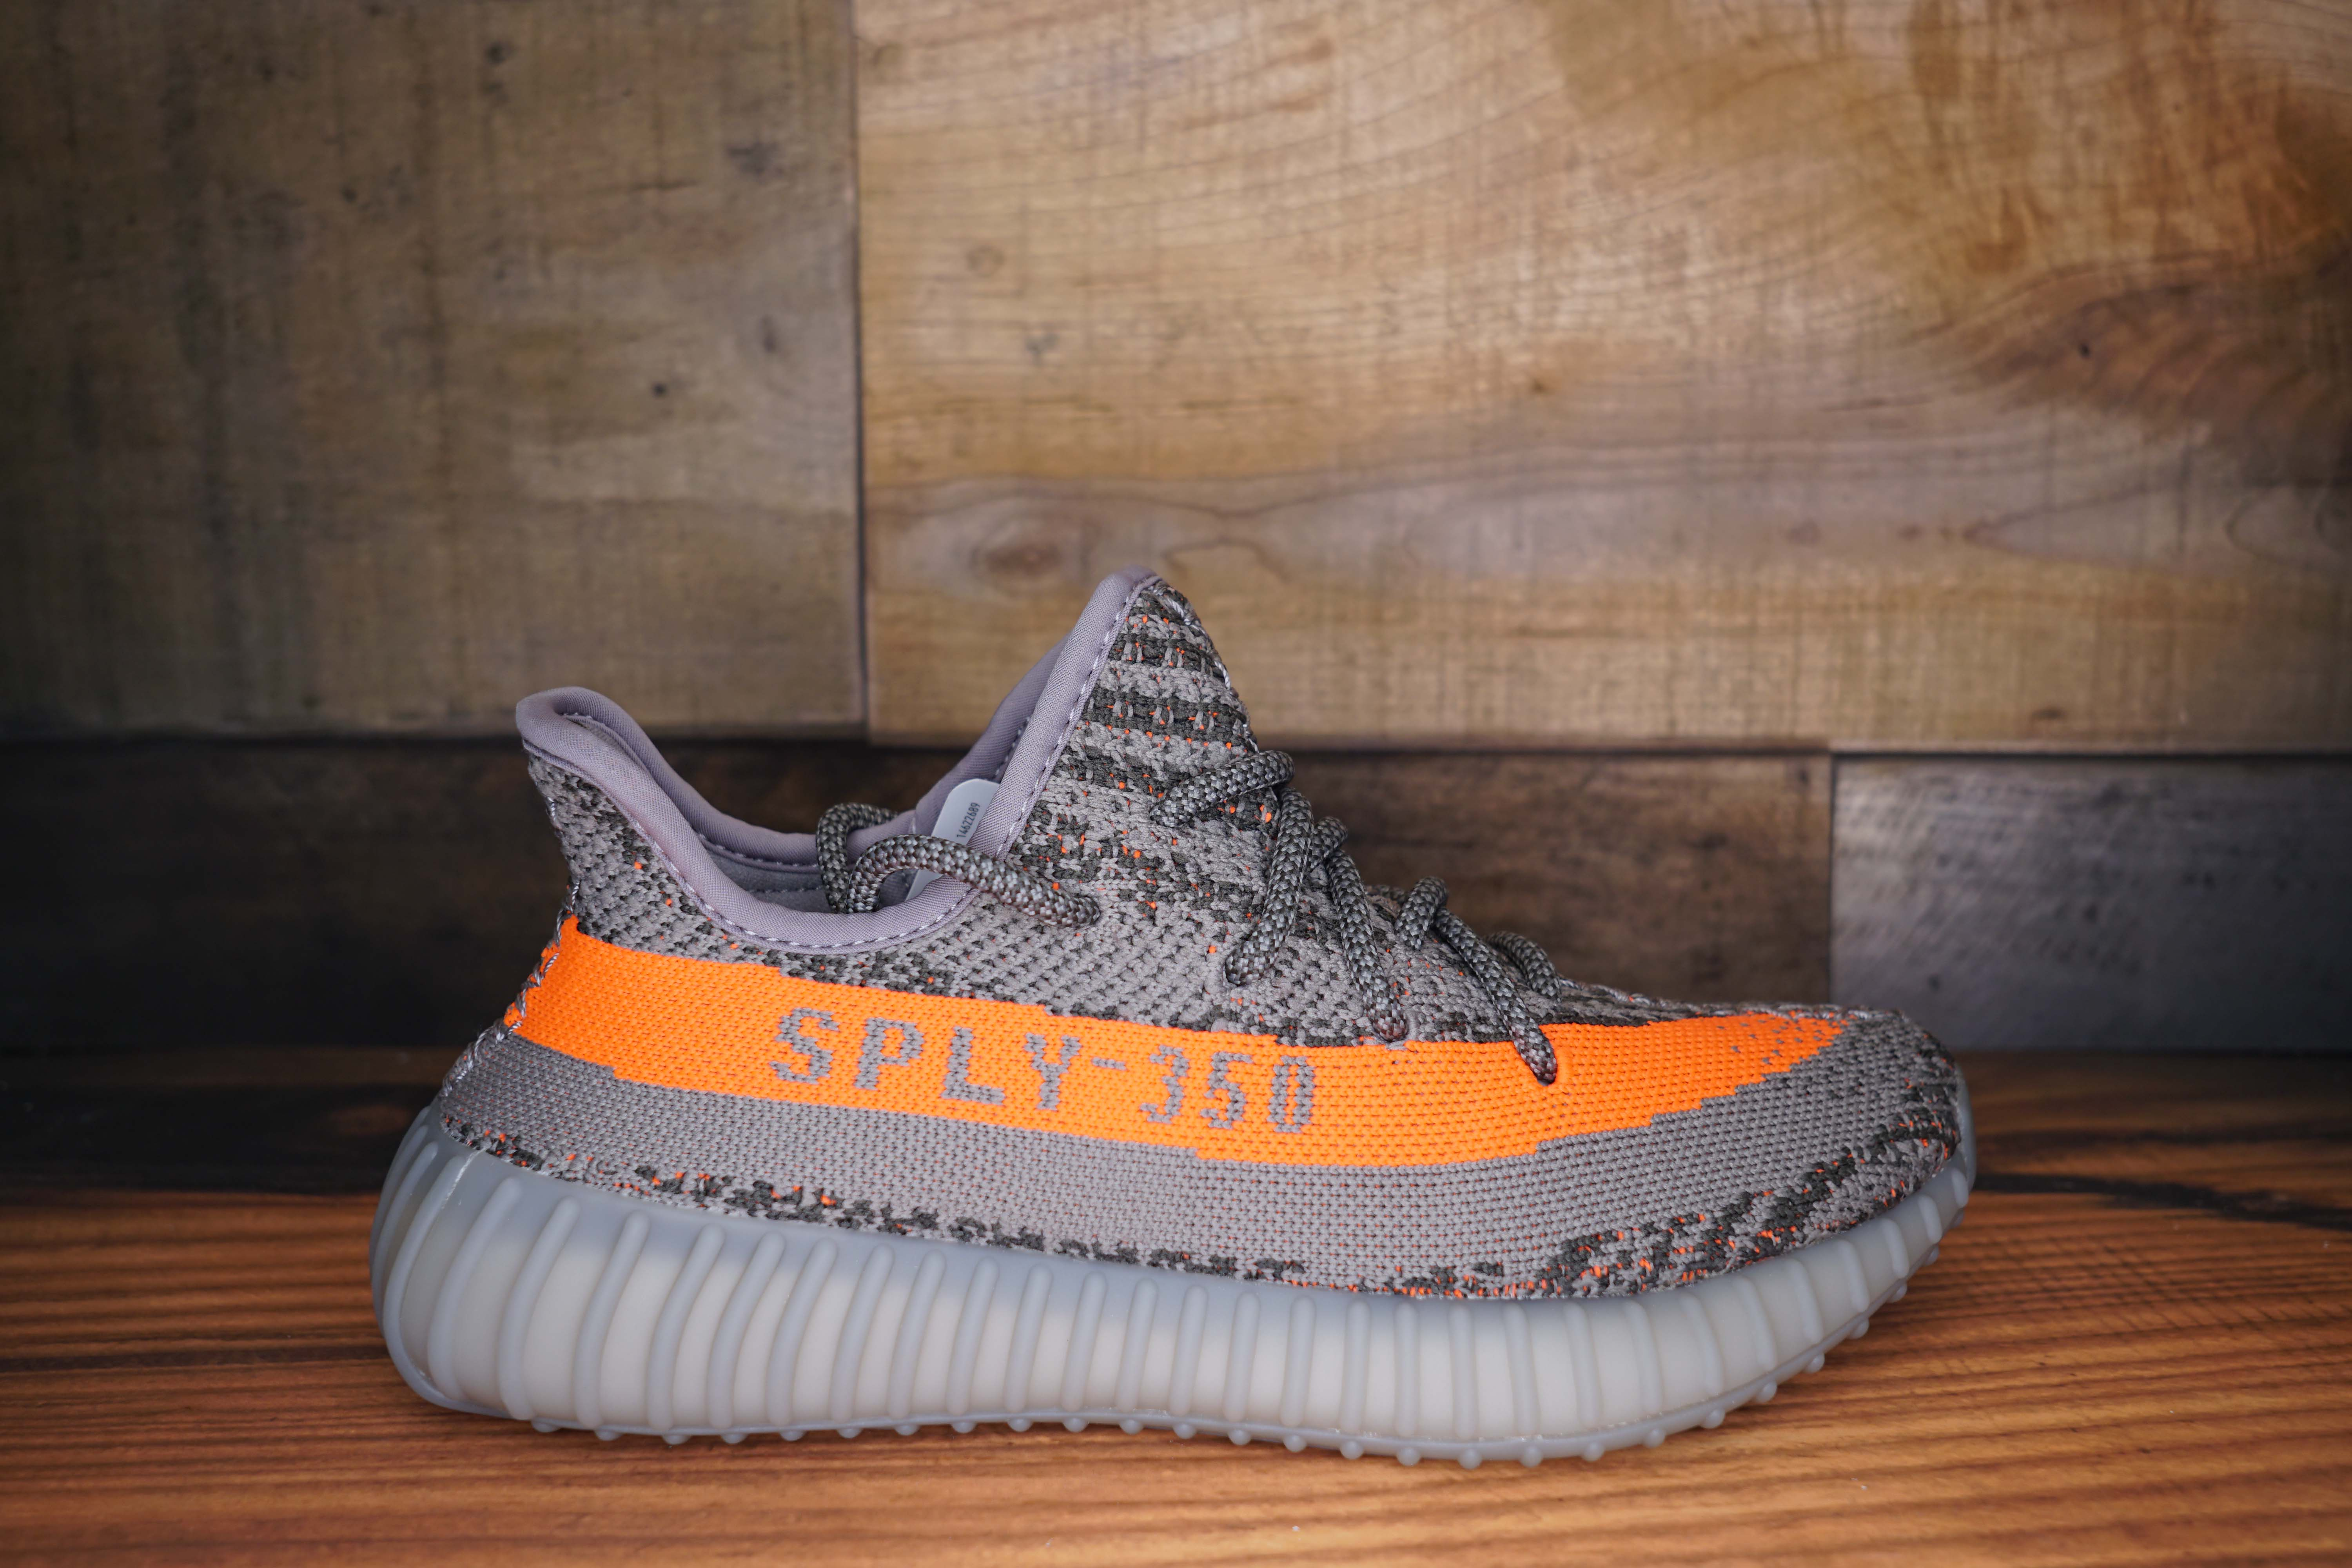 Adidas Yeezy Boost 350 V2 Copper/Red/Green Review and On Feet